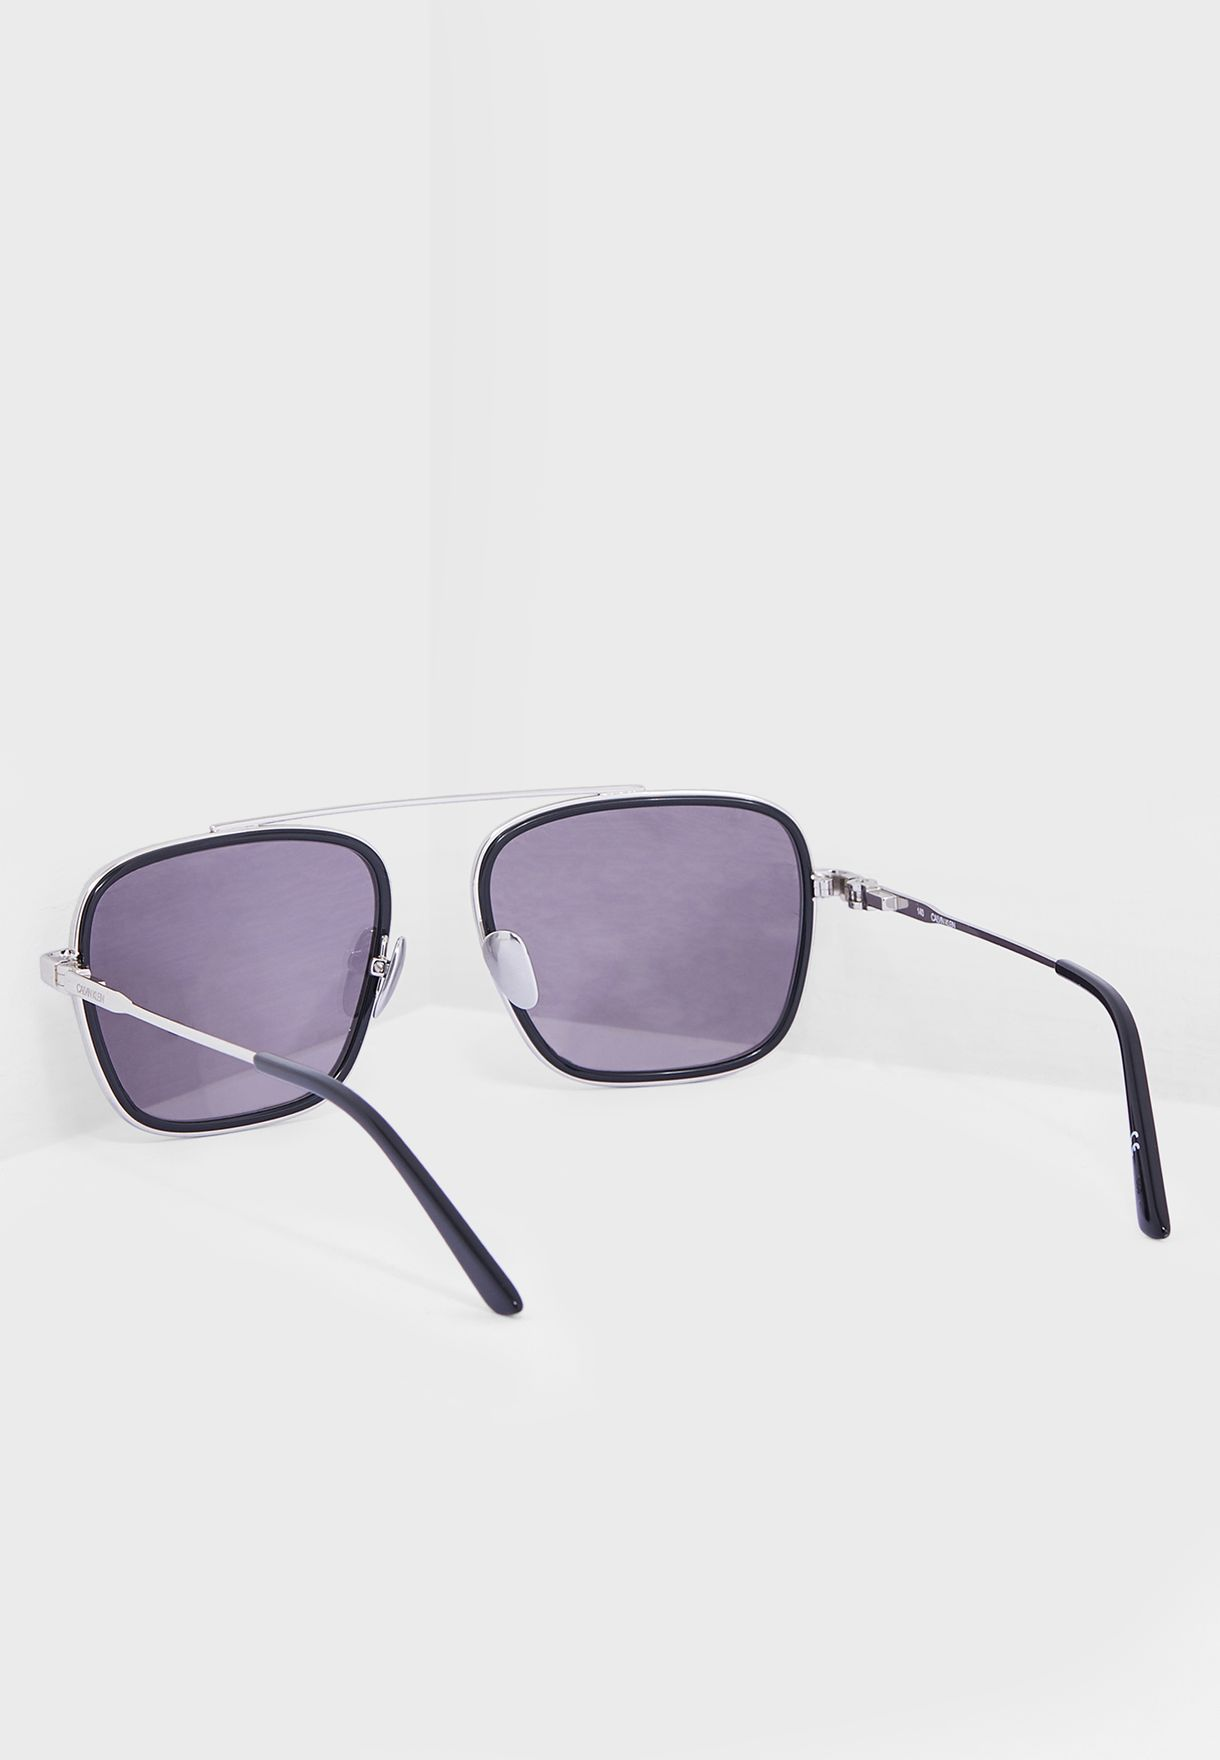 CK18102S Square Sunglasses